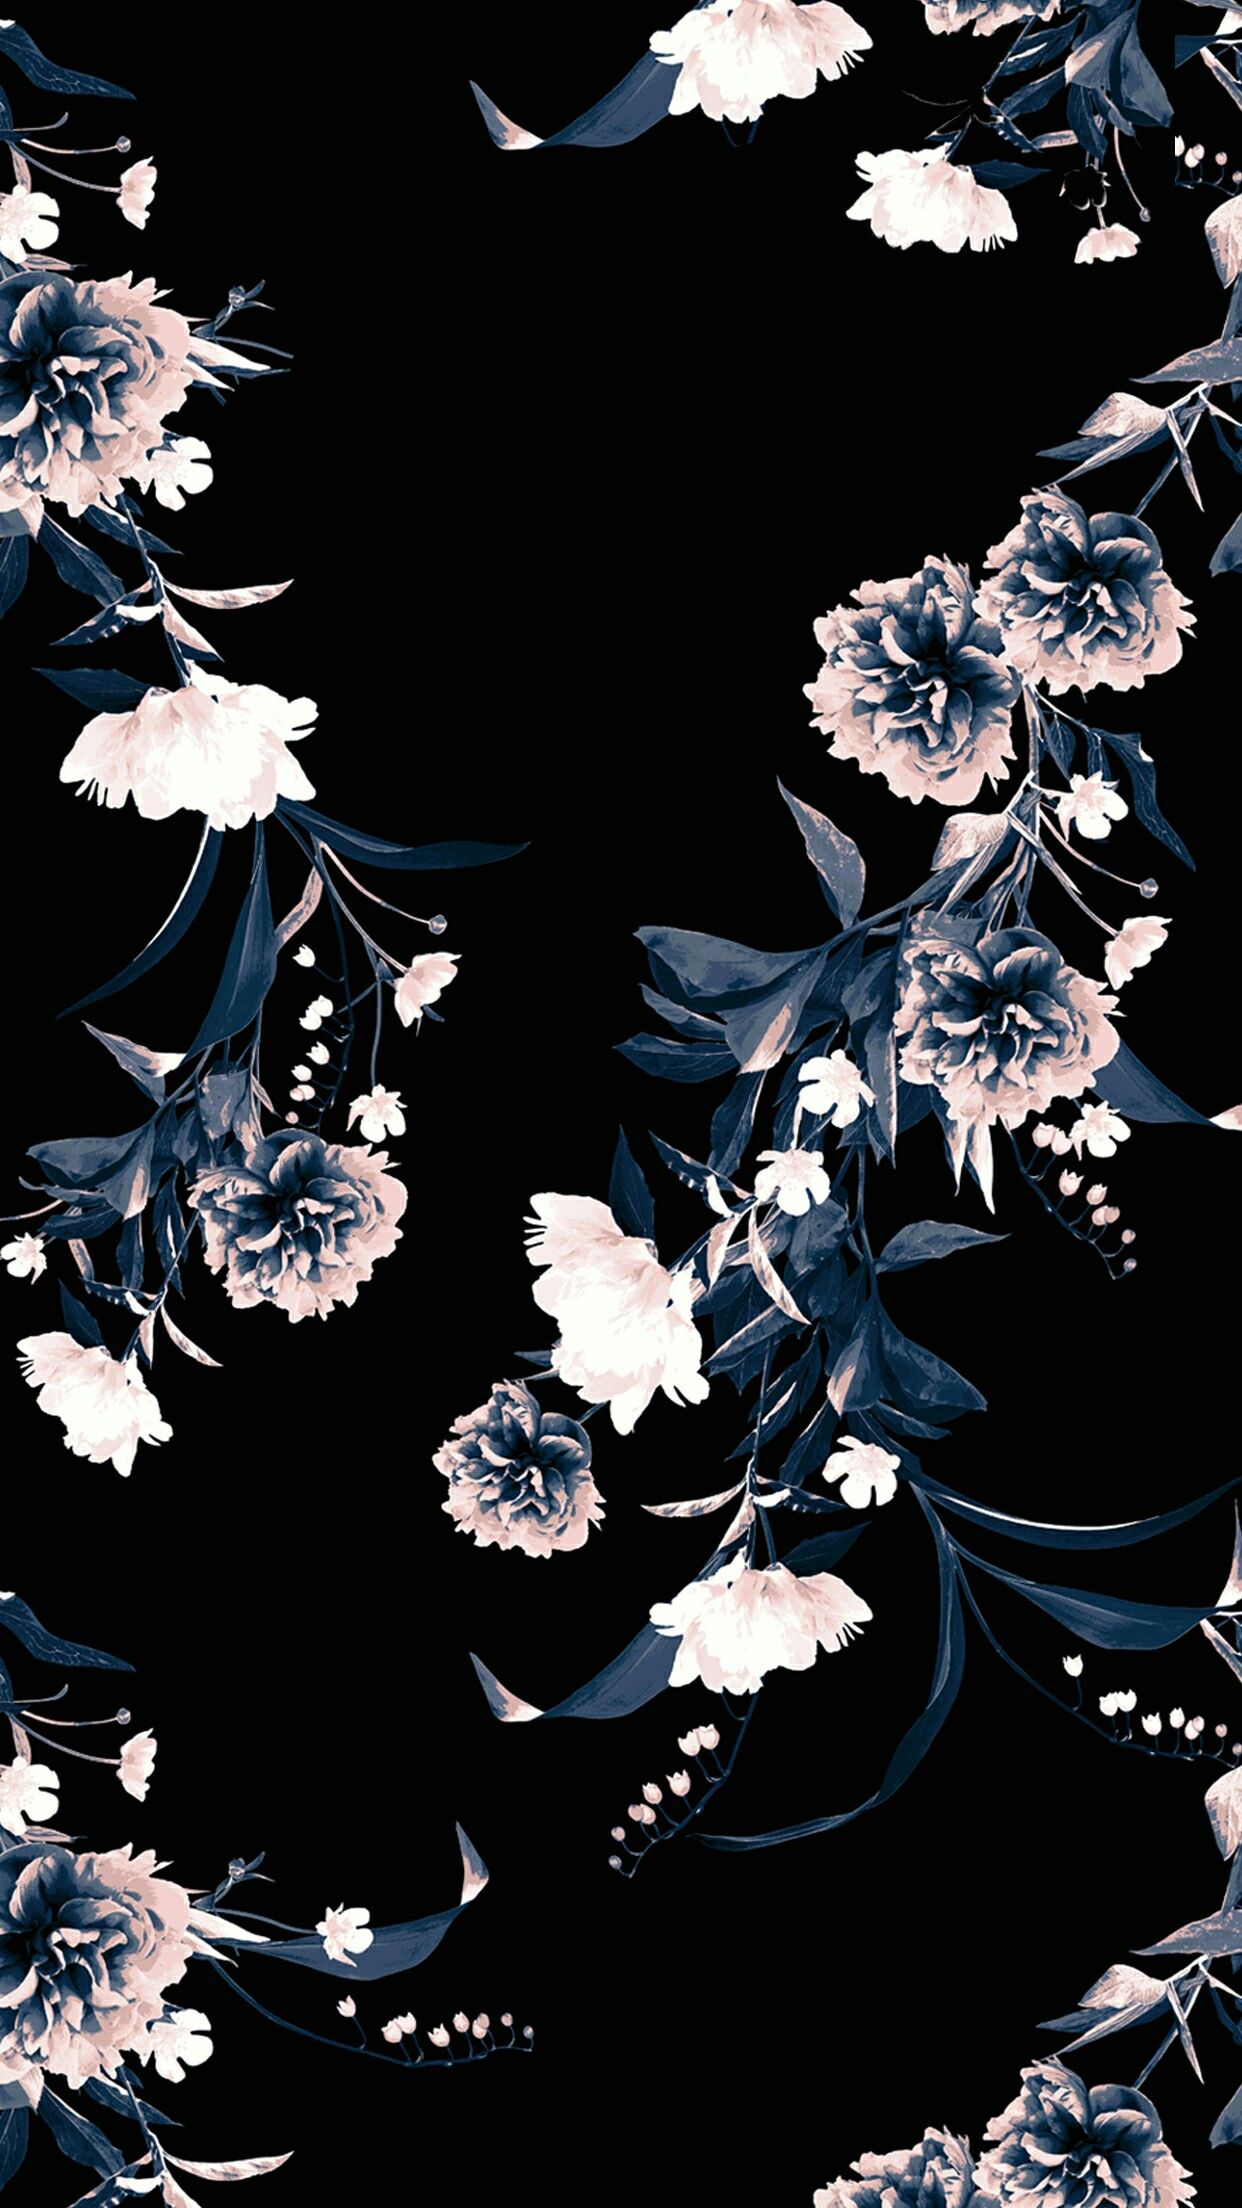 Black floral Floral wallpaper, Flower wallpaper, Art